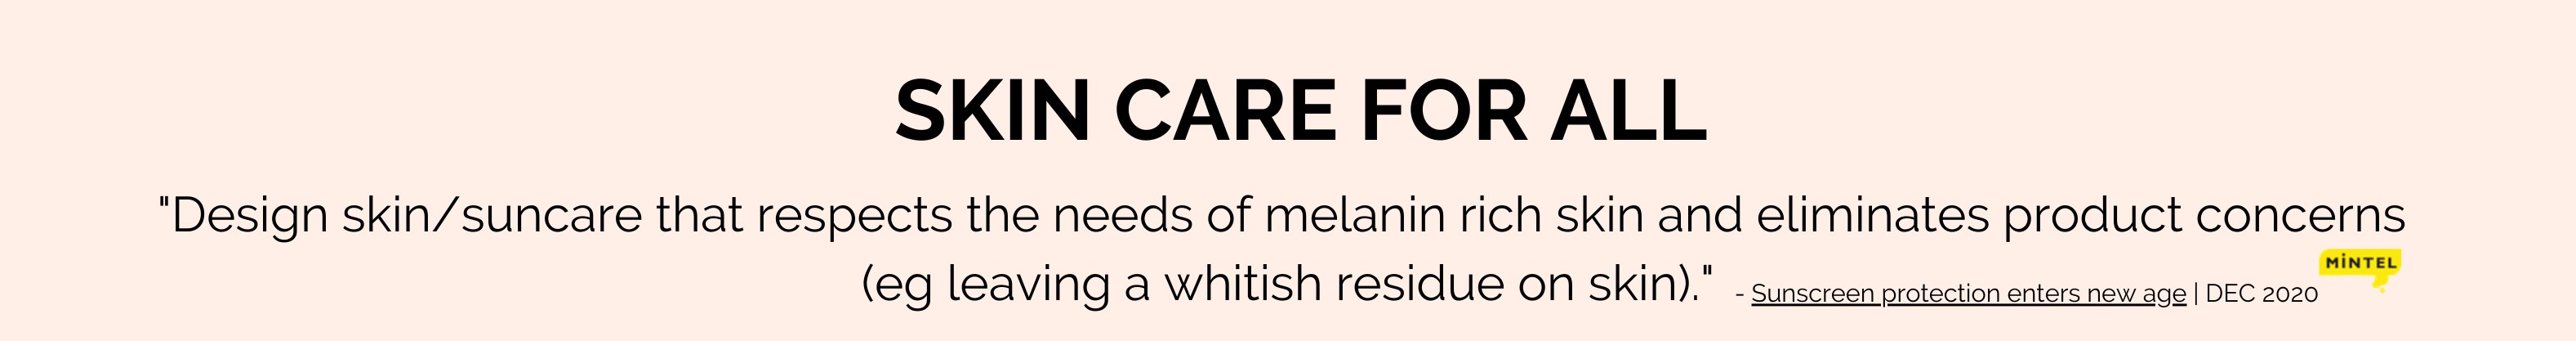 Skin care for all